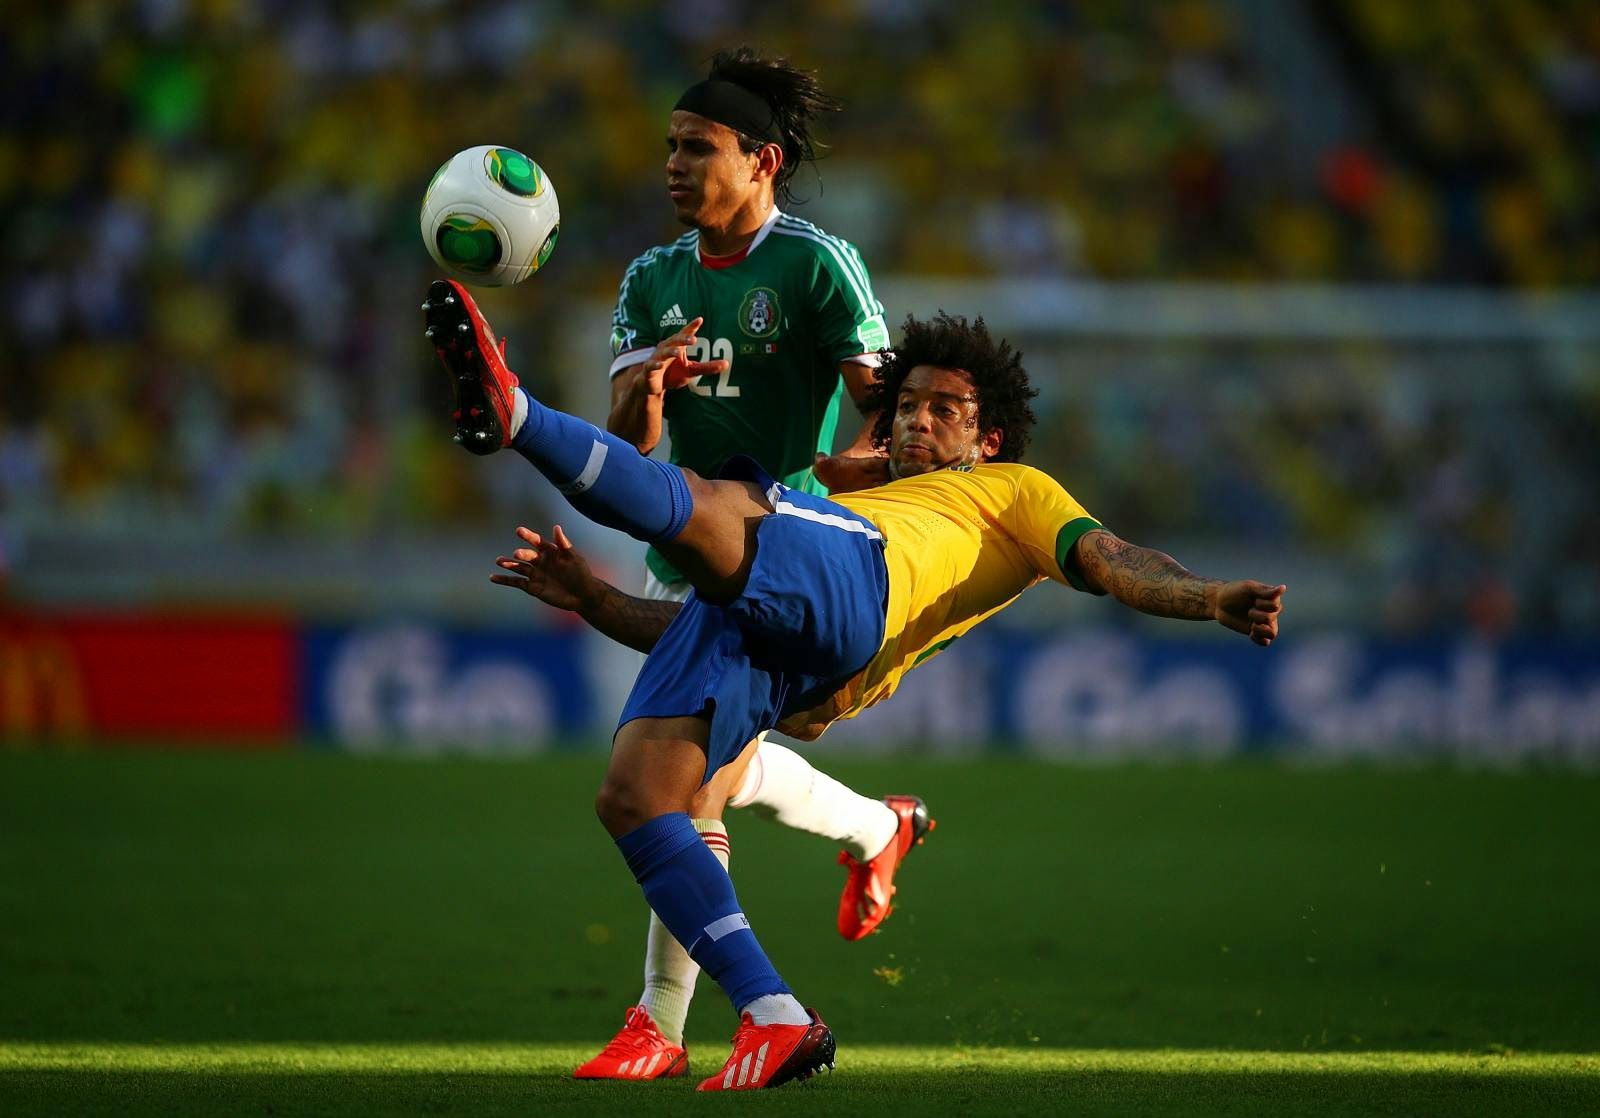 Mexico vs Brazil - World Cup Day 6